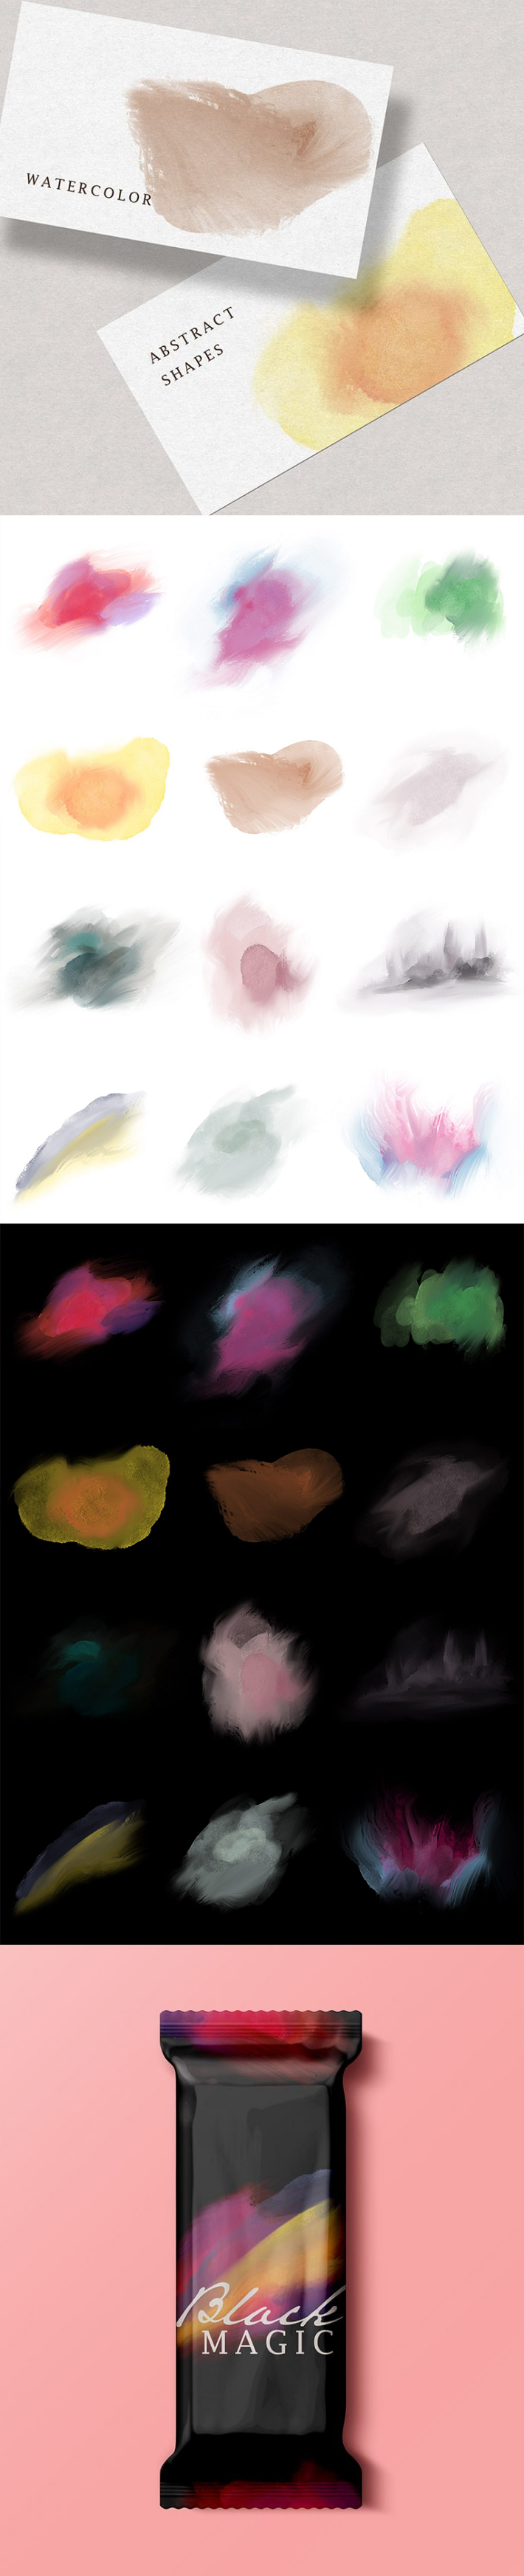 Free Awesome Unique Watercolor Shapes